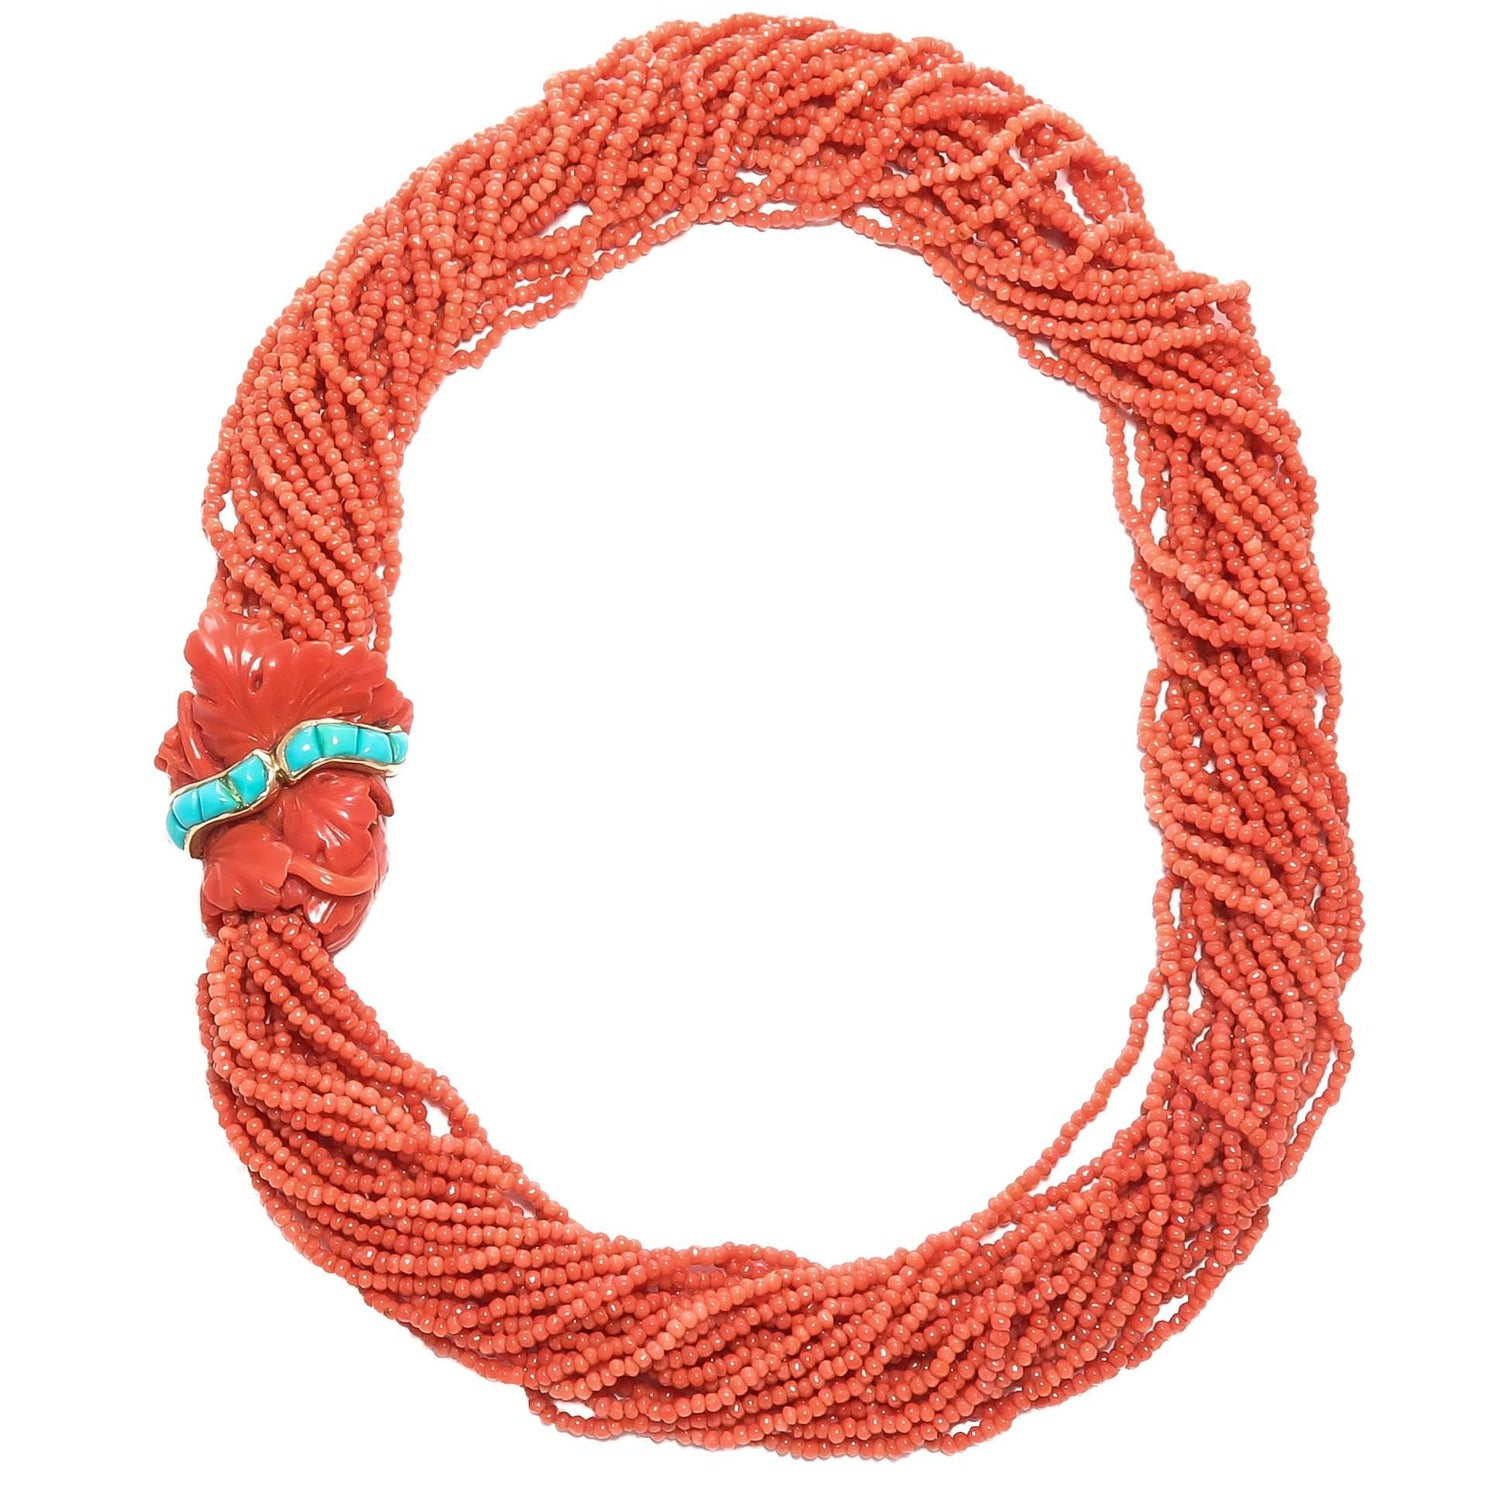 Antique Coral Beaded Necklaces - 144 For Sale at 1stdibs